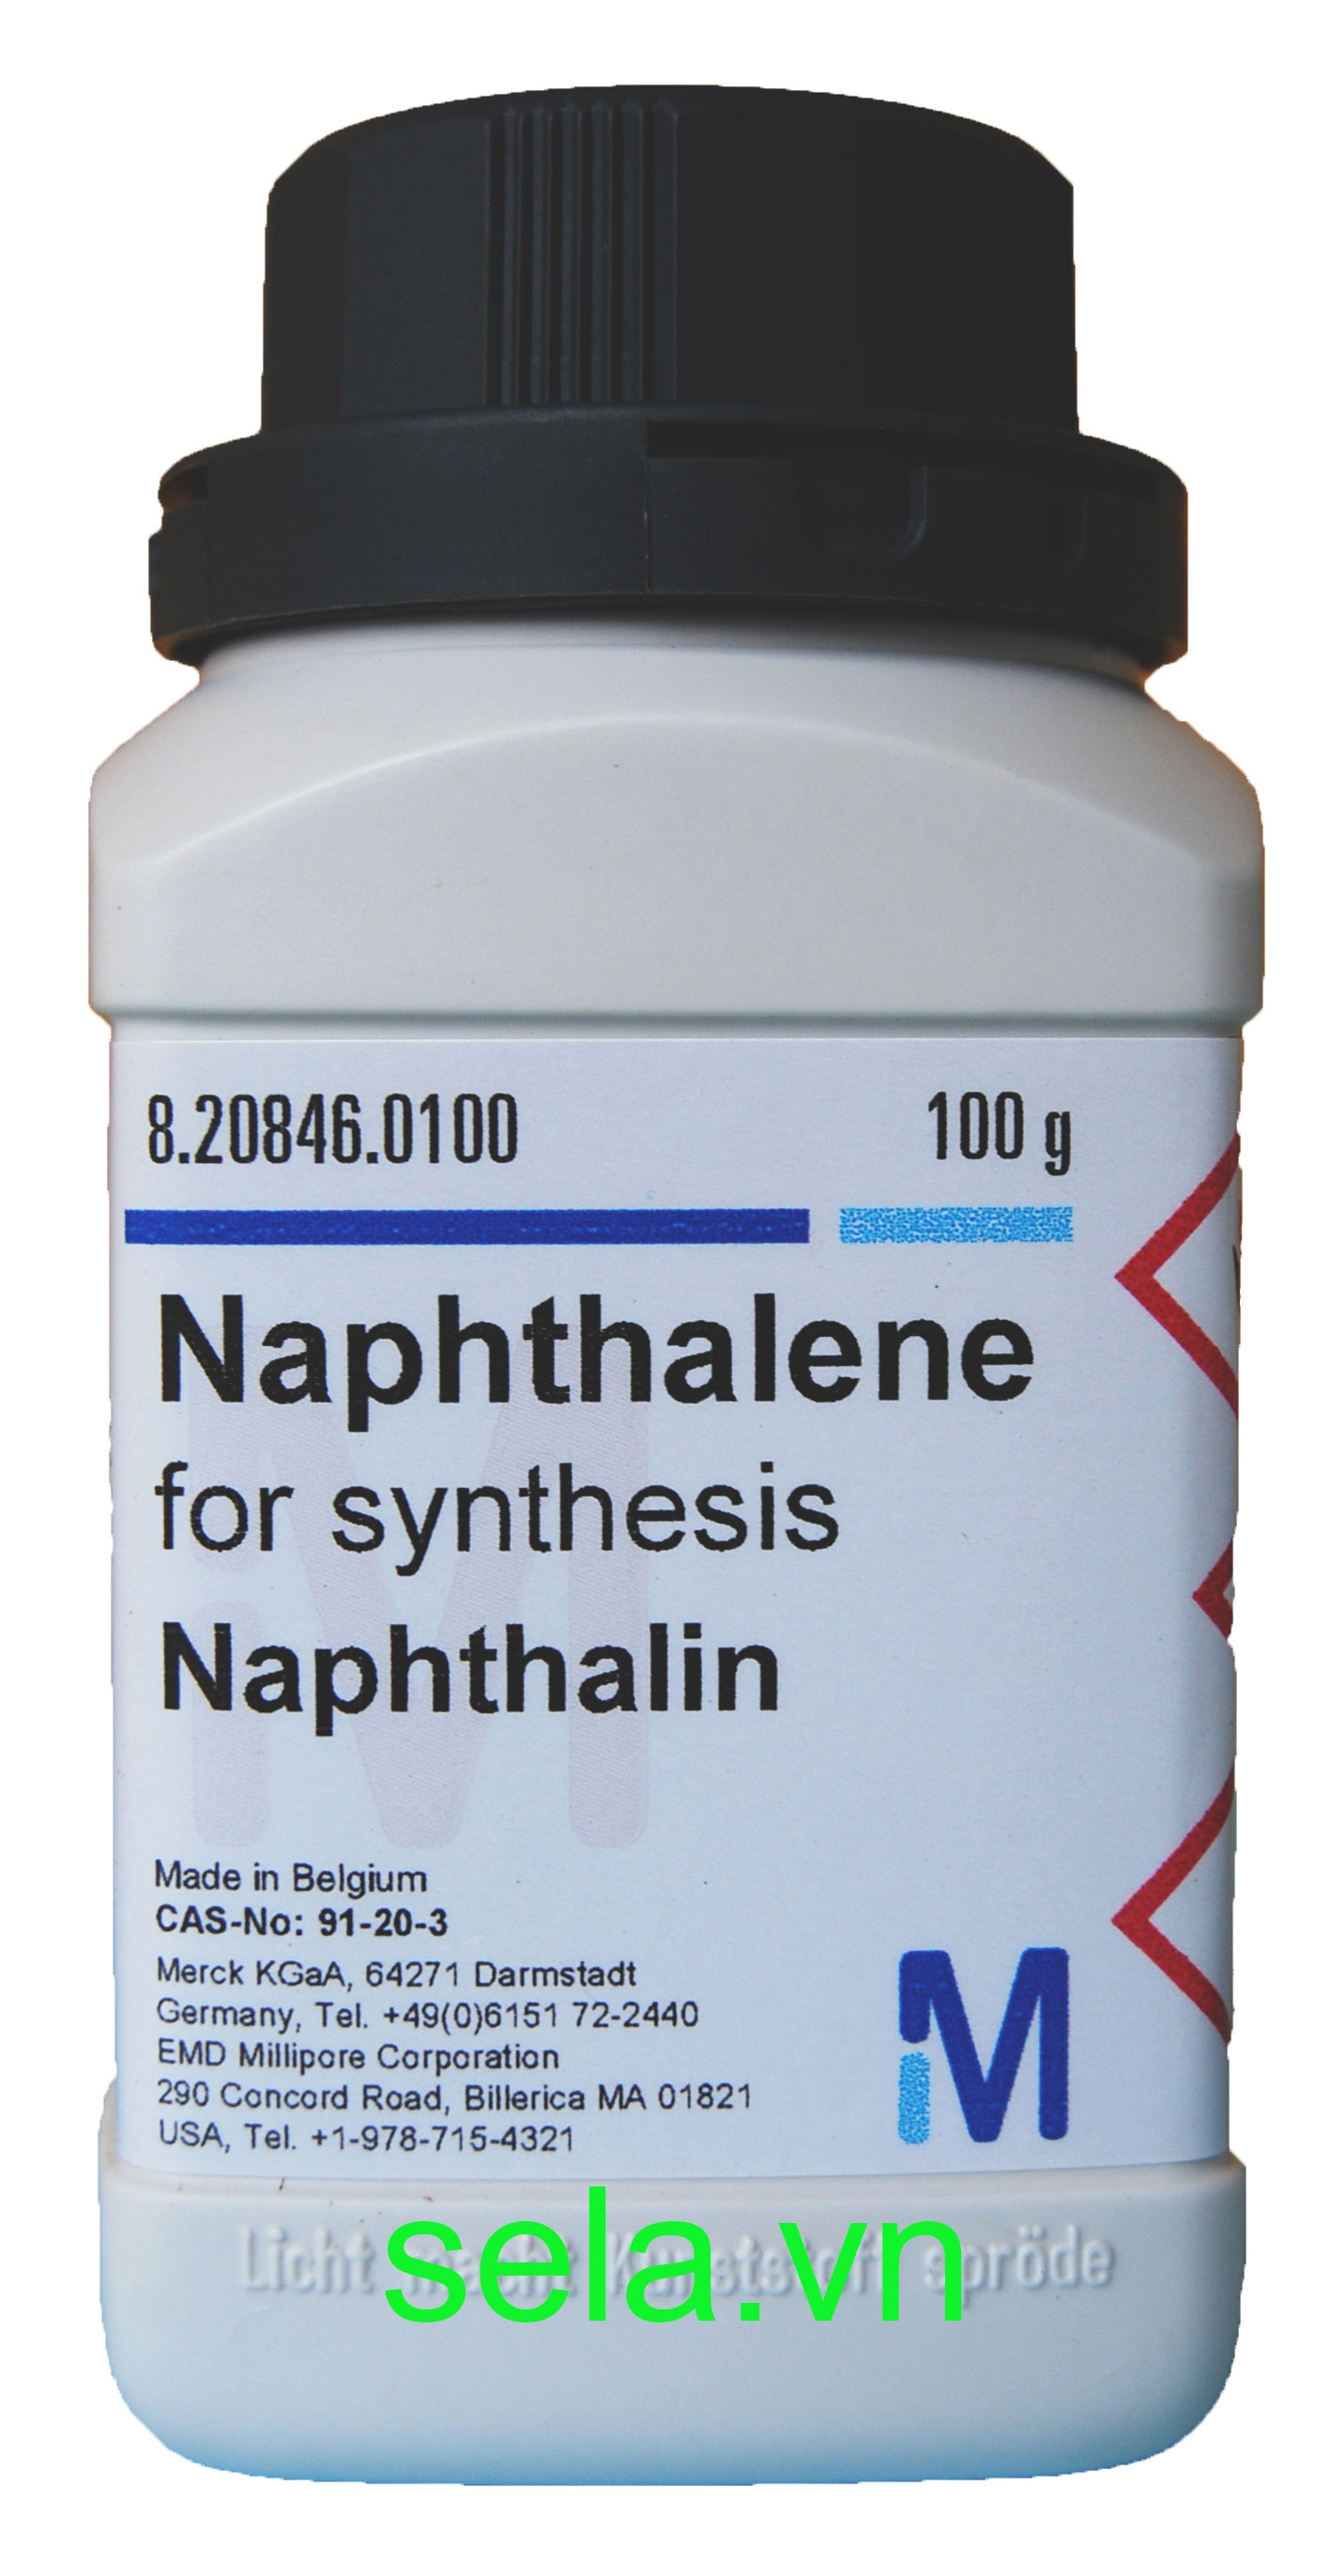 Naphthalene for synthesis